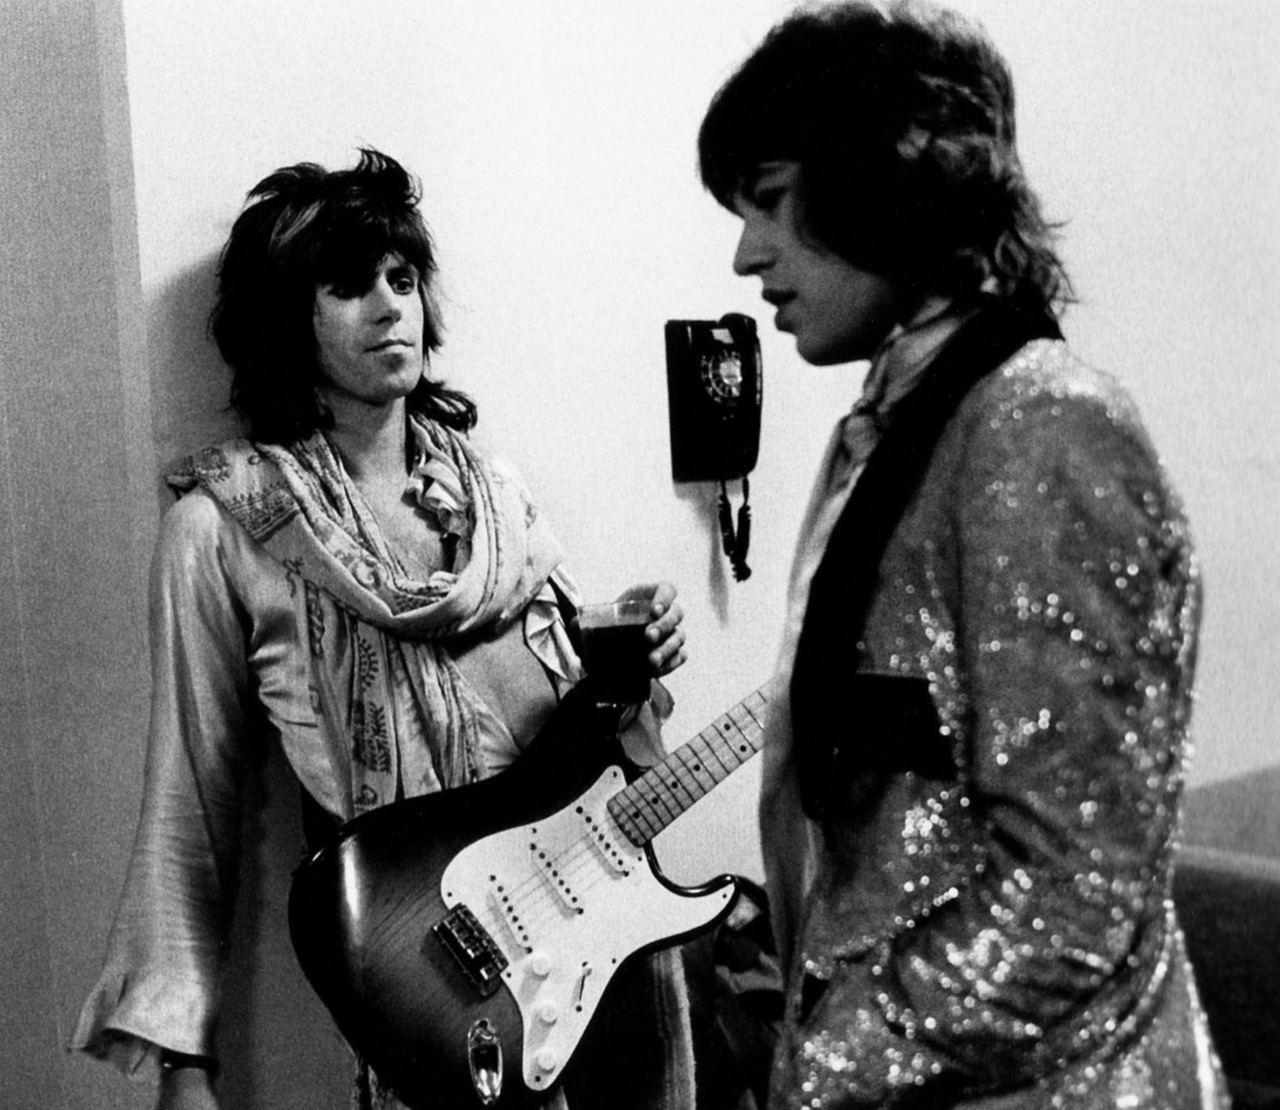 KEITH RICHARDS et MICK JAGGER thebeatofaheartgrowncold:   omg keith